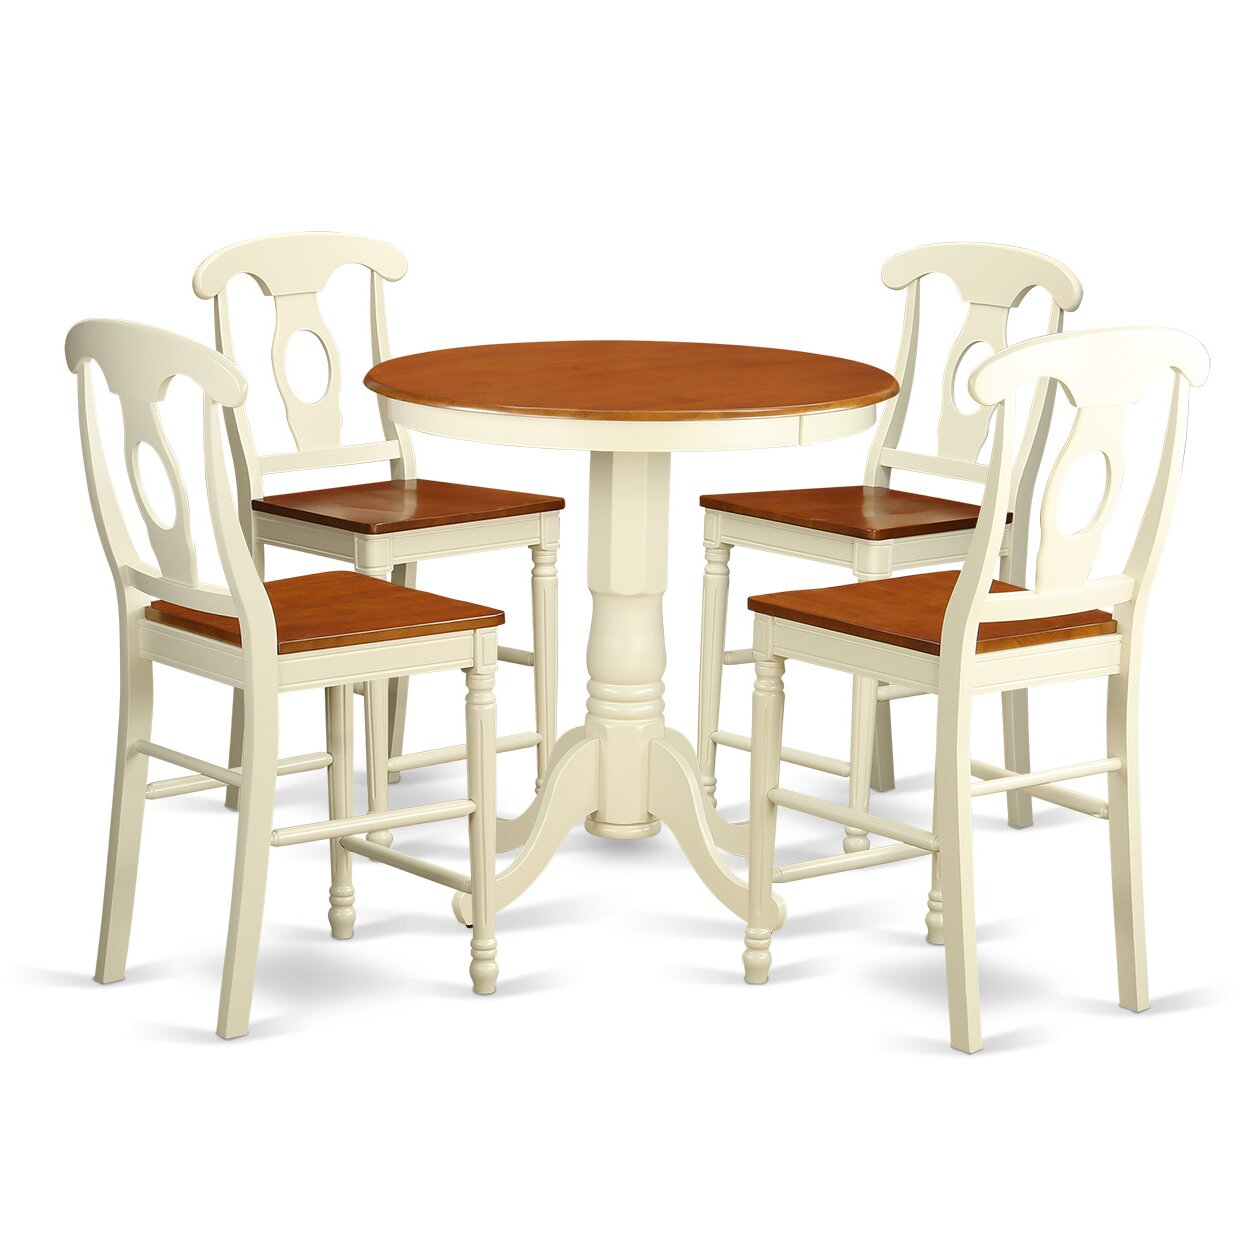 East west eden 5 piece counter height pub table set wayfair for Dining room table and chair sets